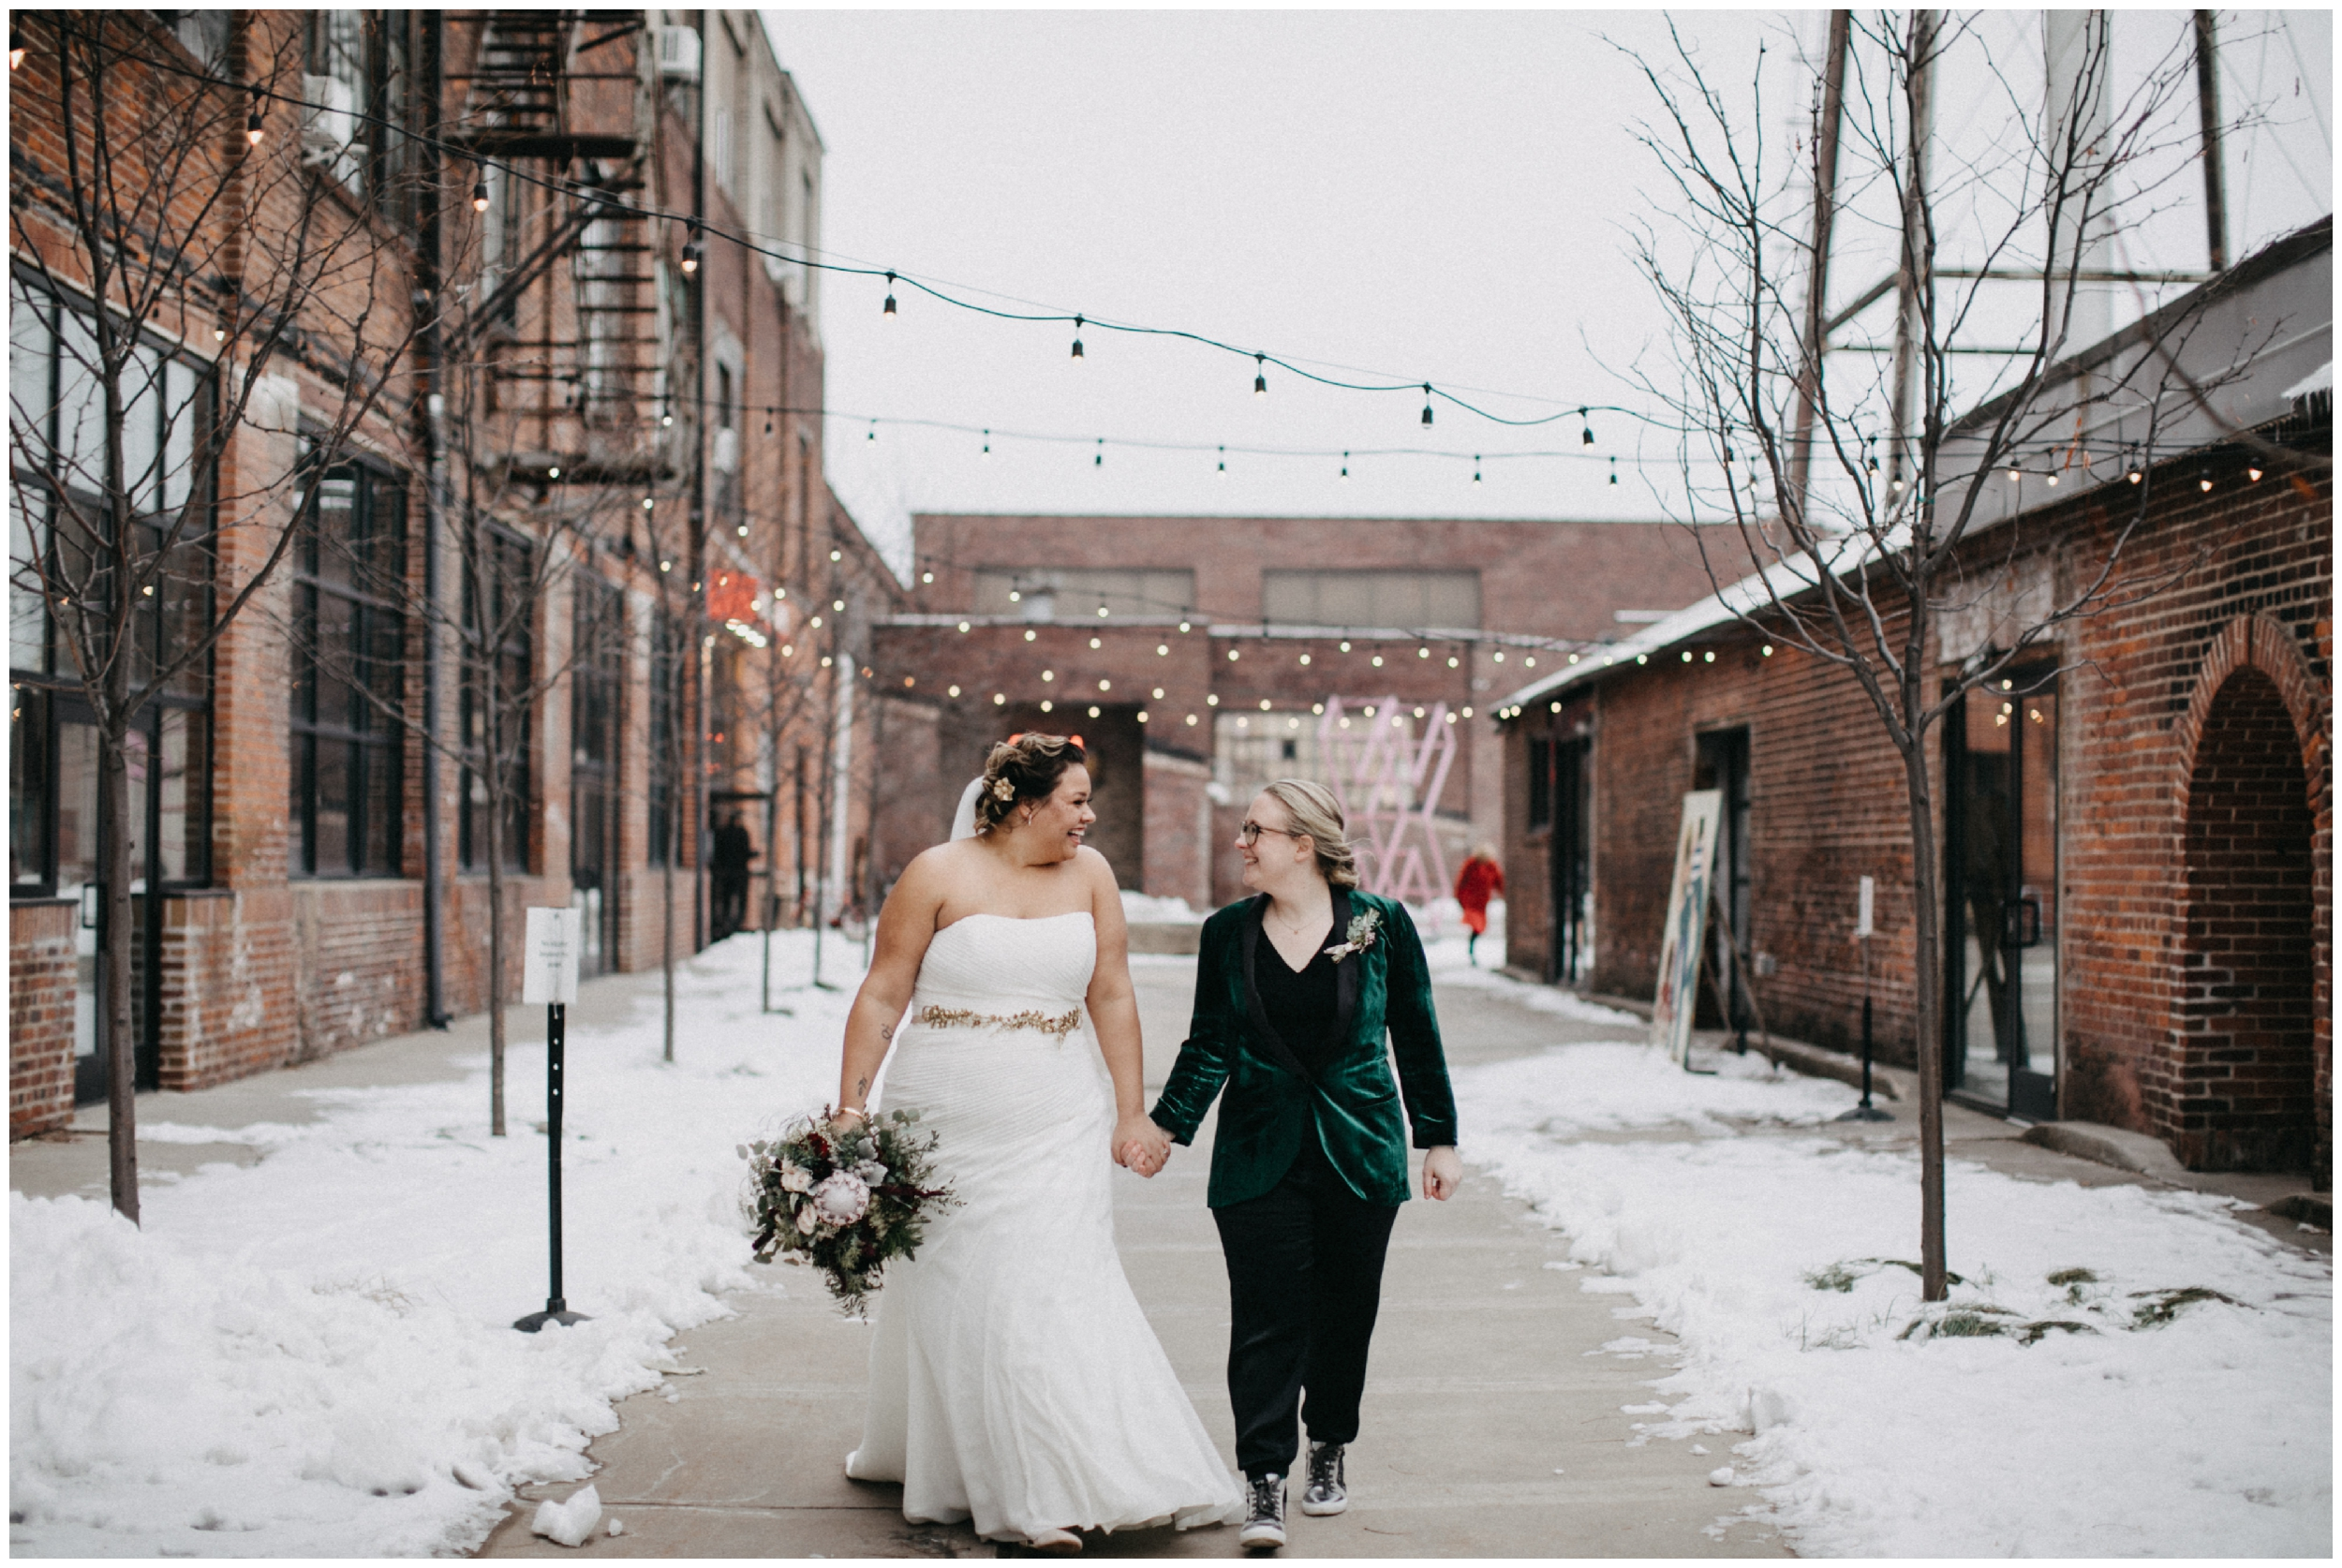 Minnesota winter wedding at Paikka in St Paul